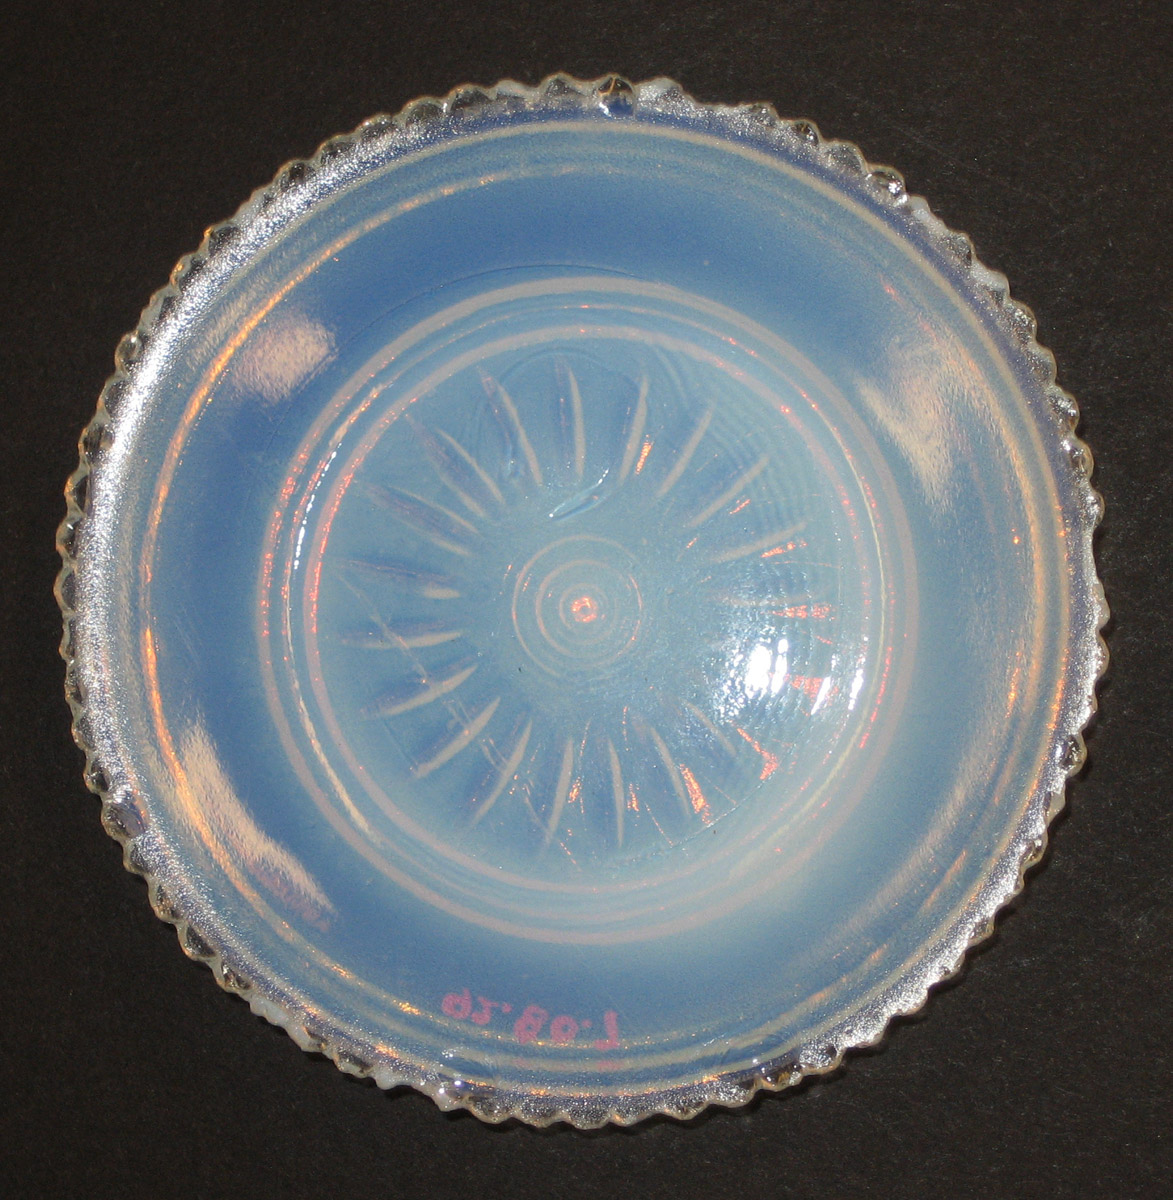 1992.0080.007 Glass cup plate